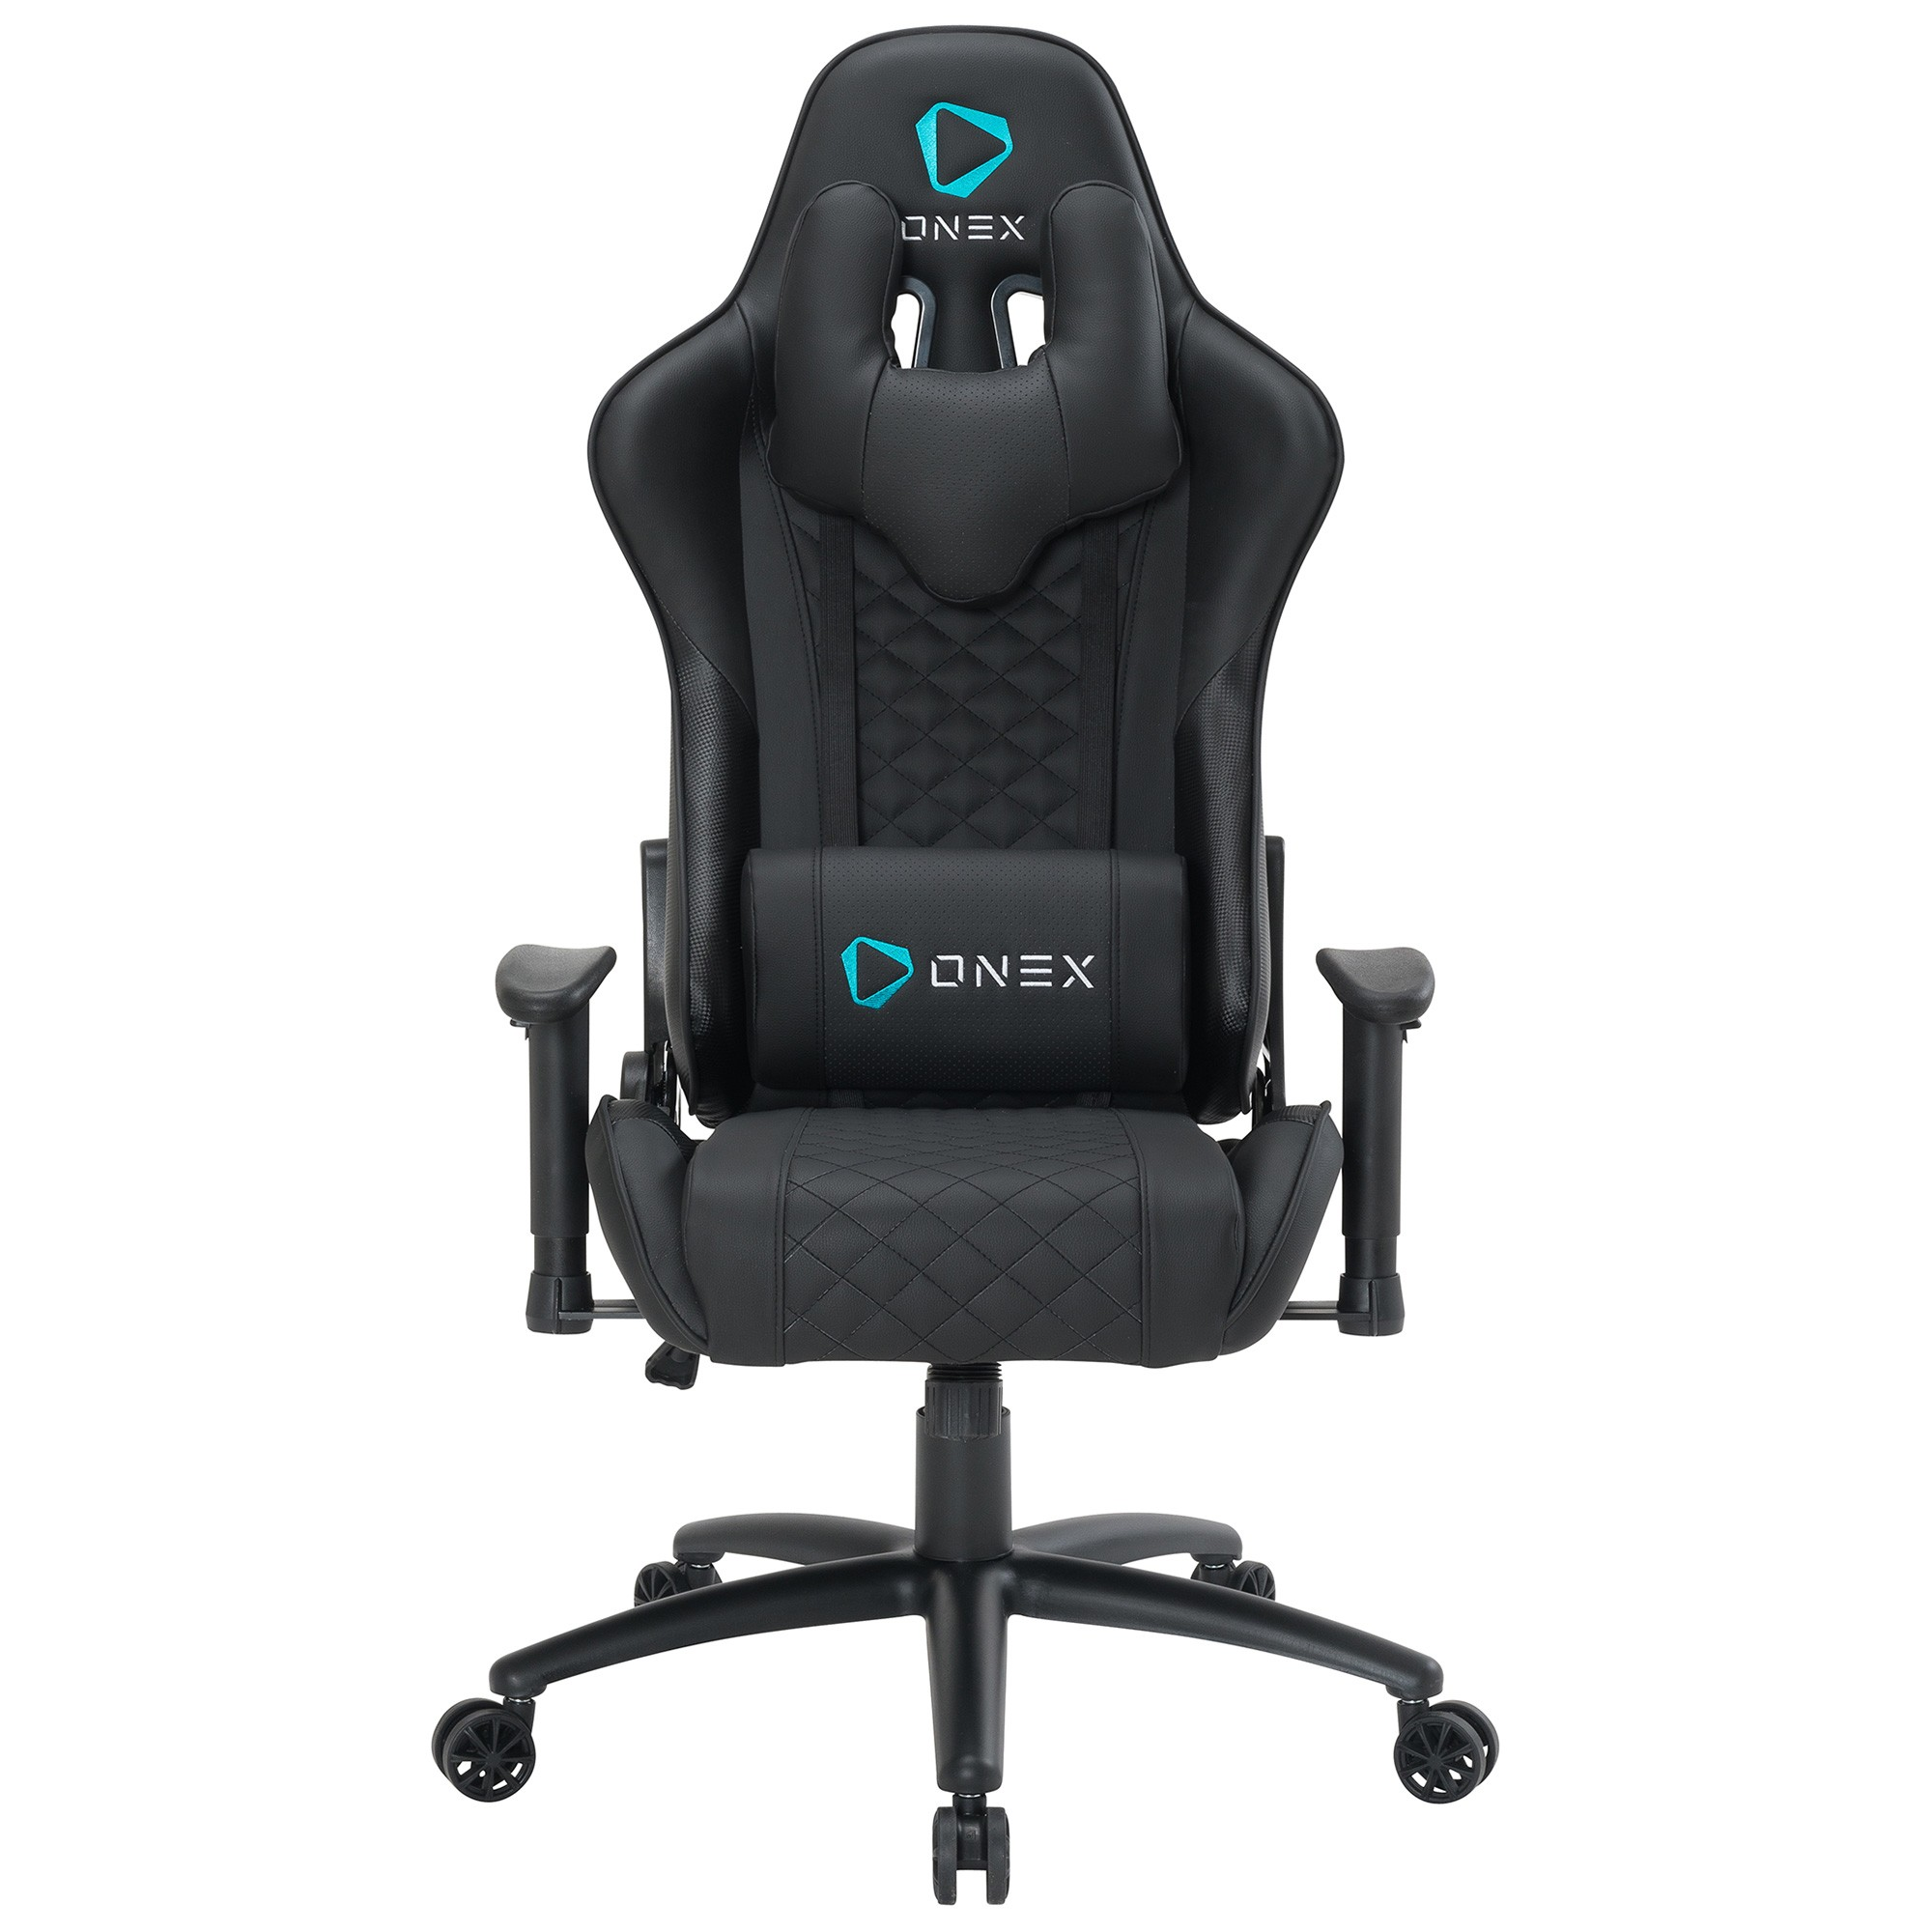 ONEX GX3 Gaming Chair, Black